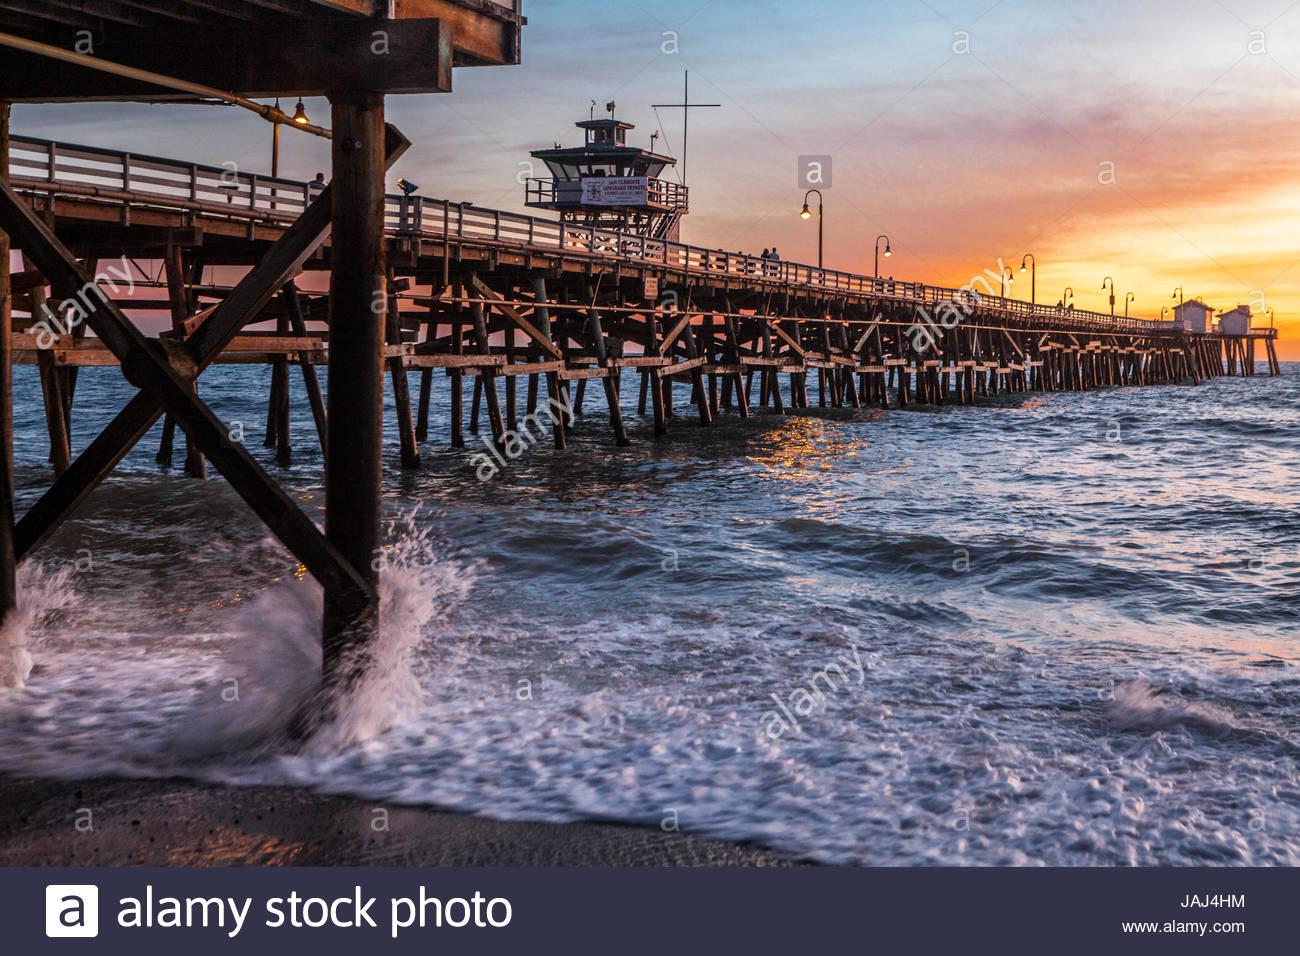 The 1,296 foot long wooden pleasure pier in San Clemente, California, at sunset. Stock Photo